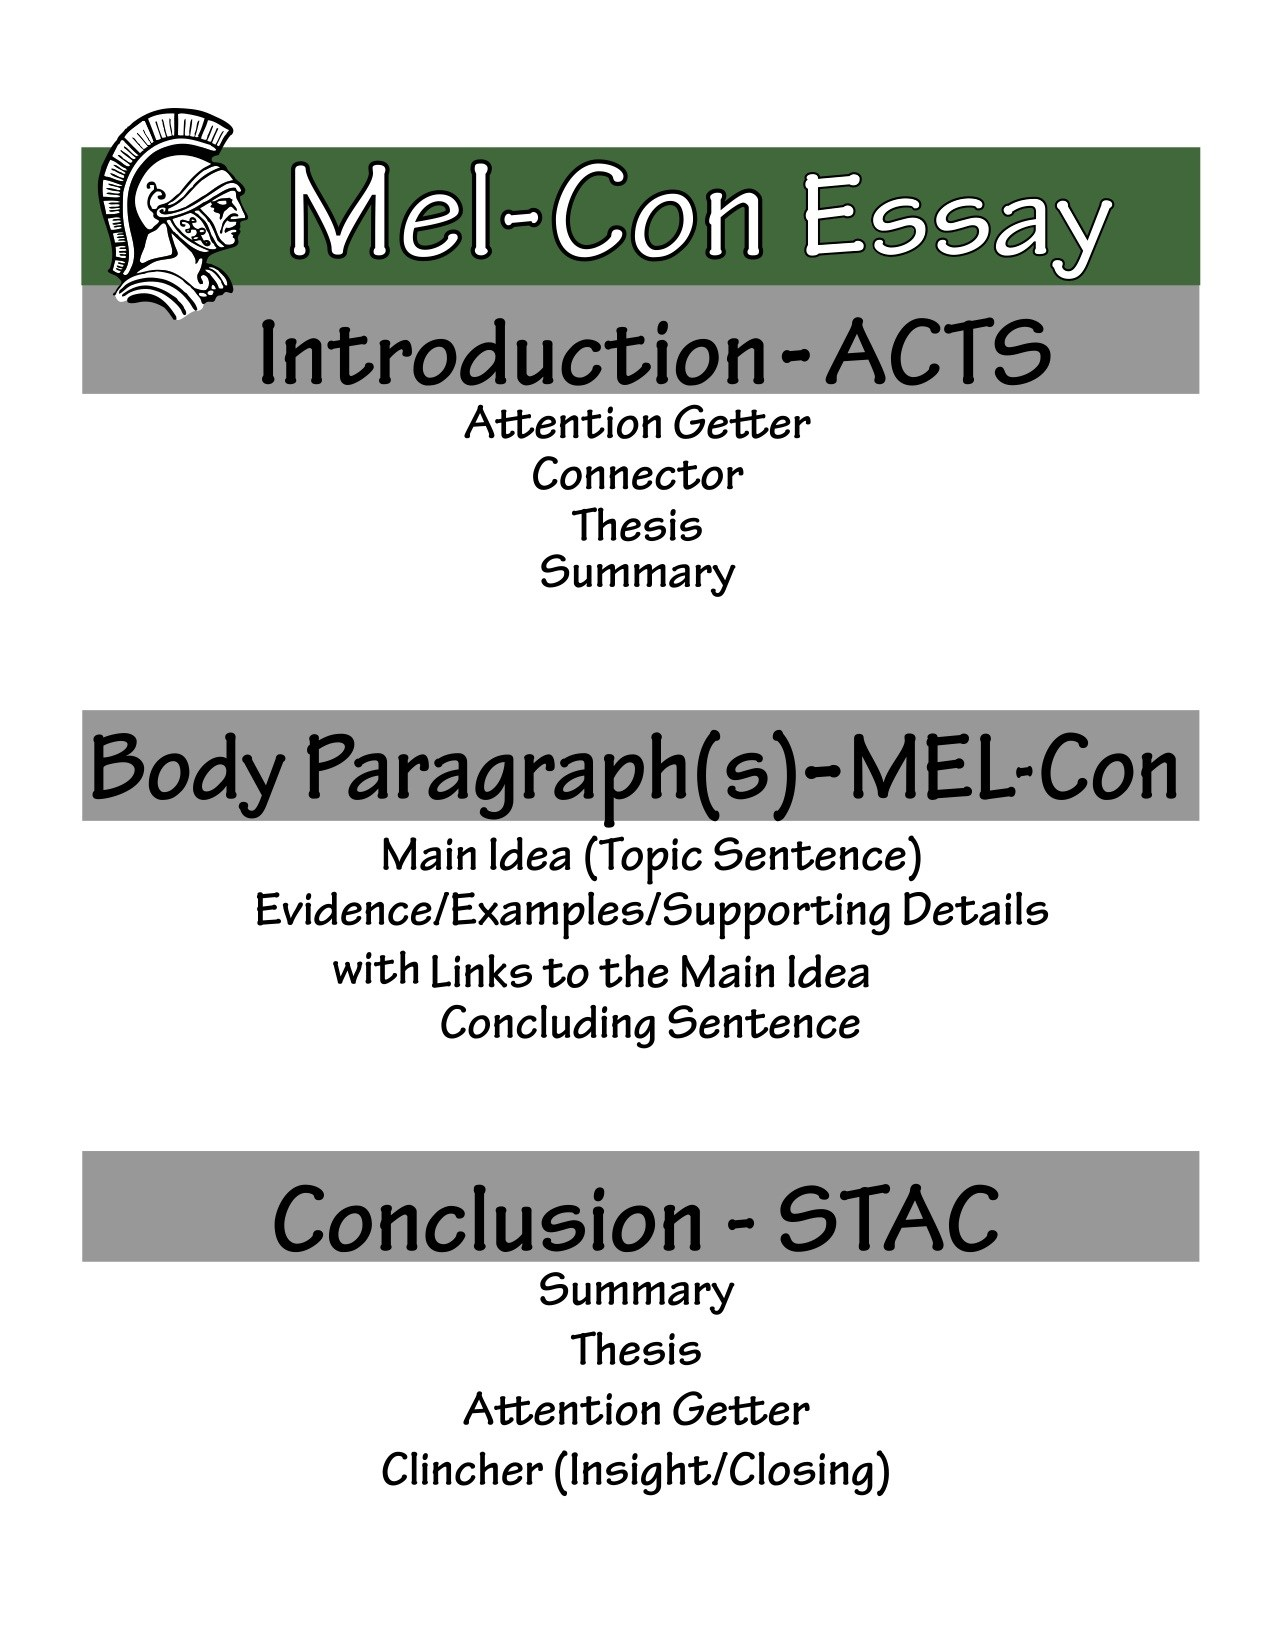 023 Mel Conessay85x11 Transitions In Essays Essay Outstanding To Use College Writing Ppt Smooth Full